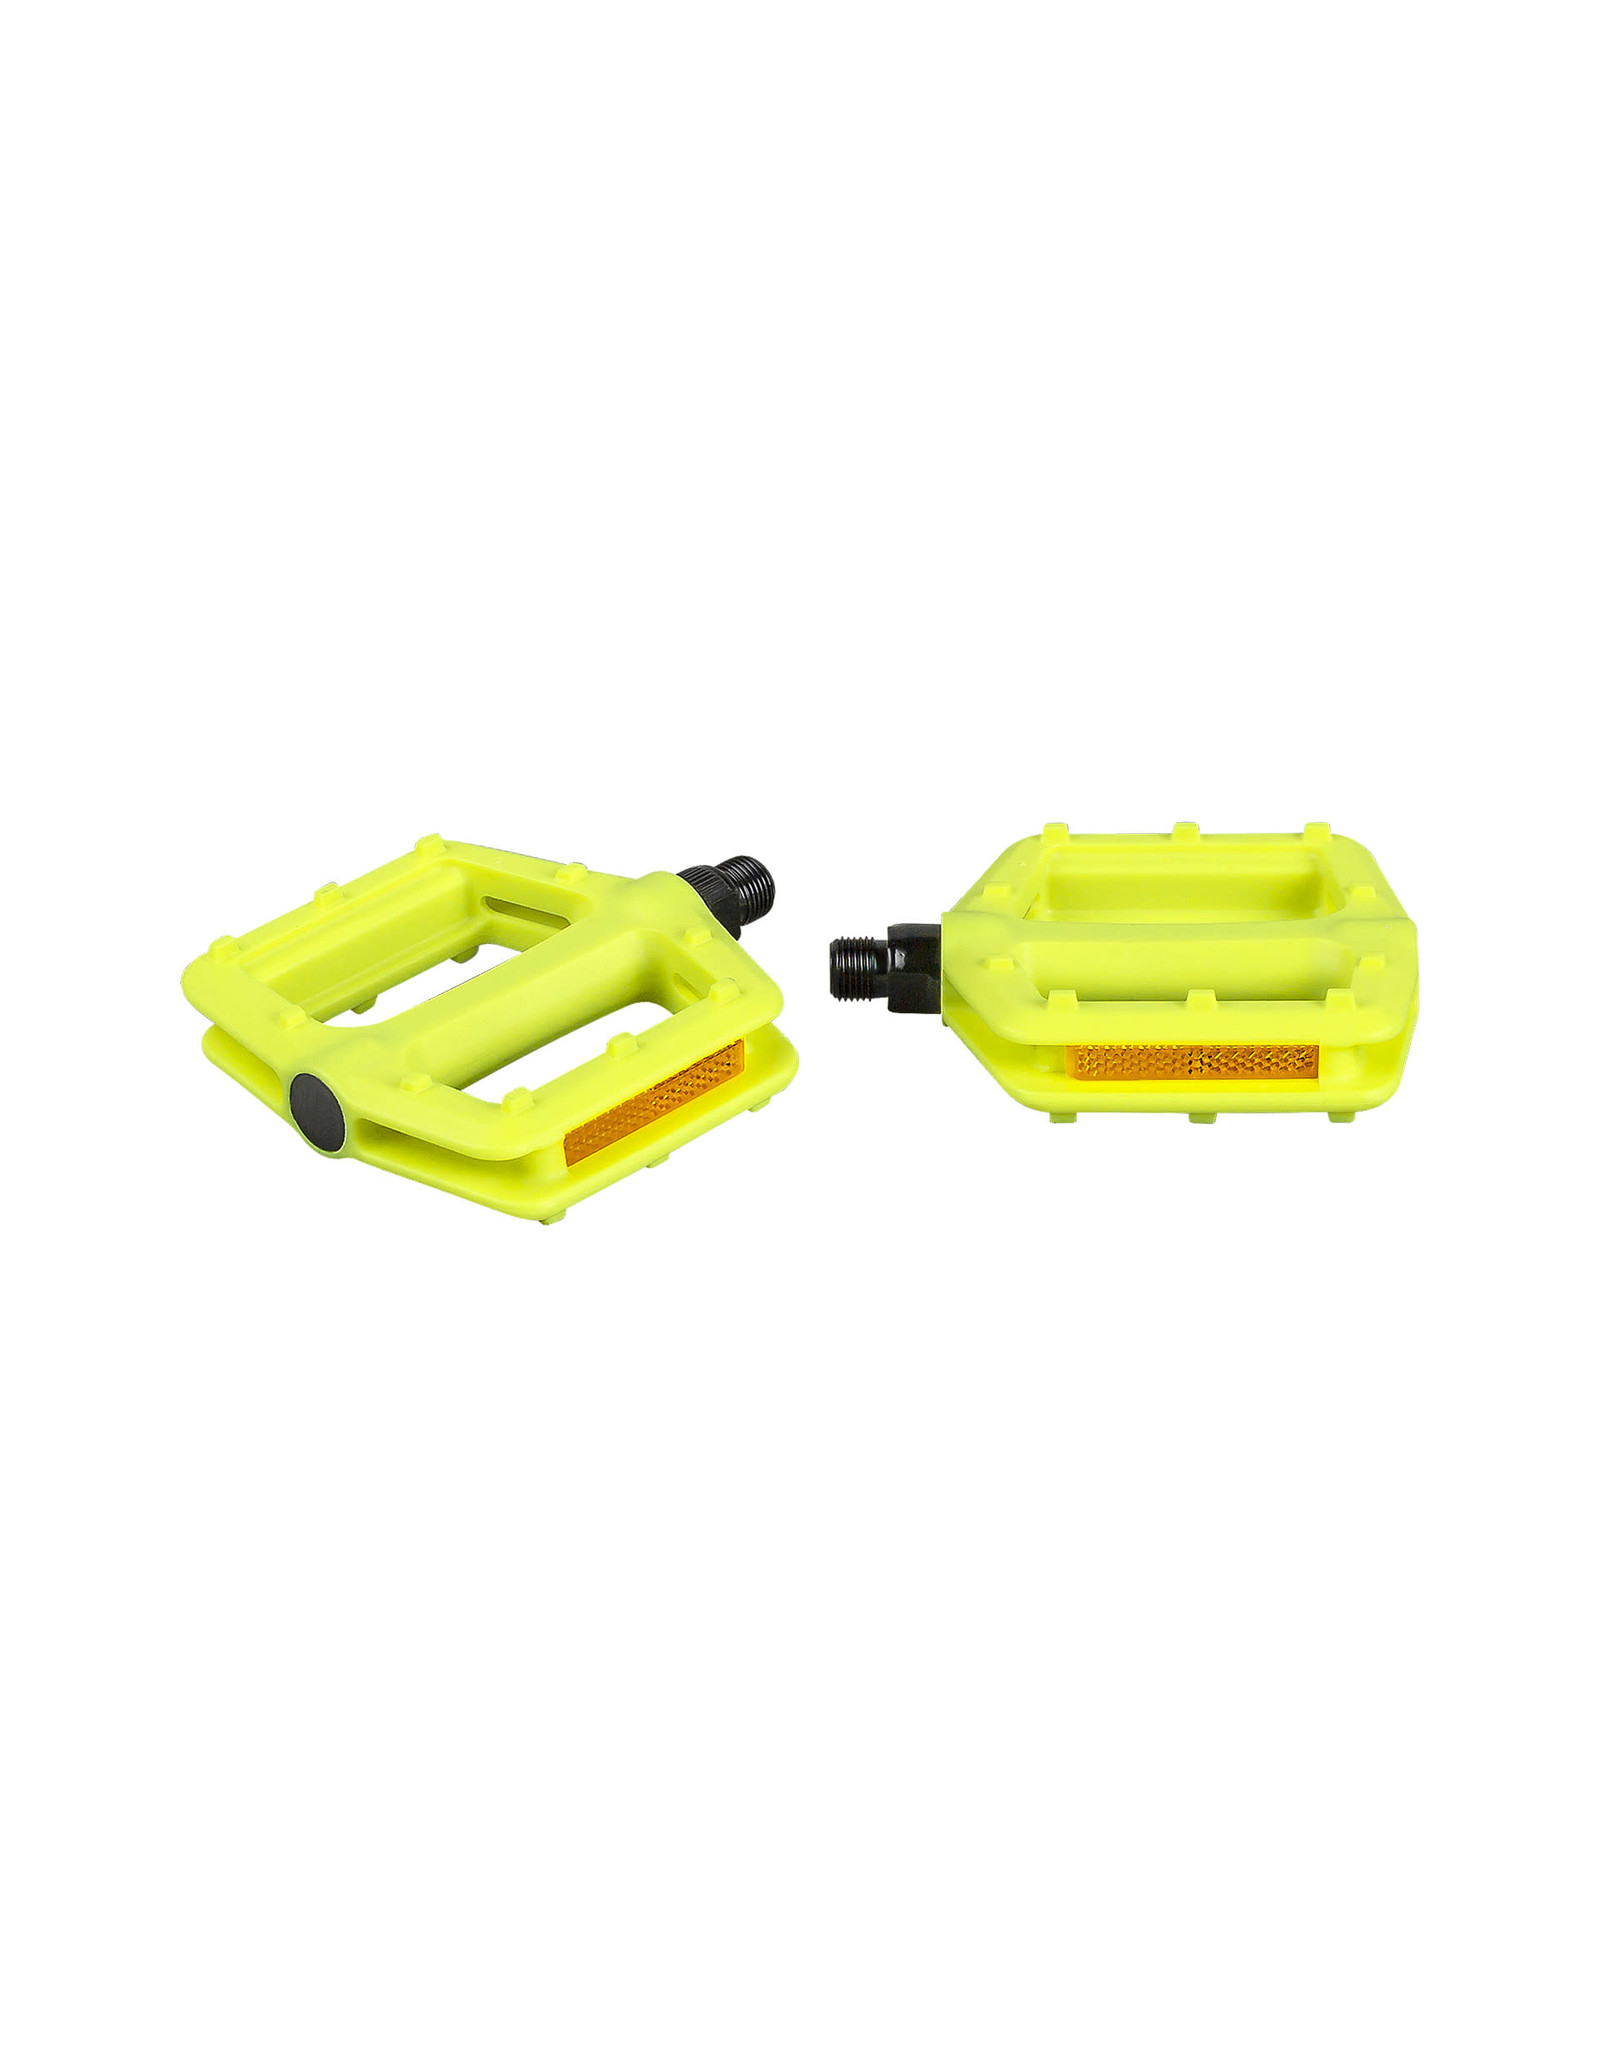 VP Components Pedal Vp Grind 916 Inch Visibility Green Pair